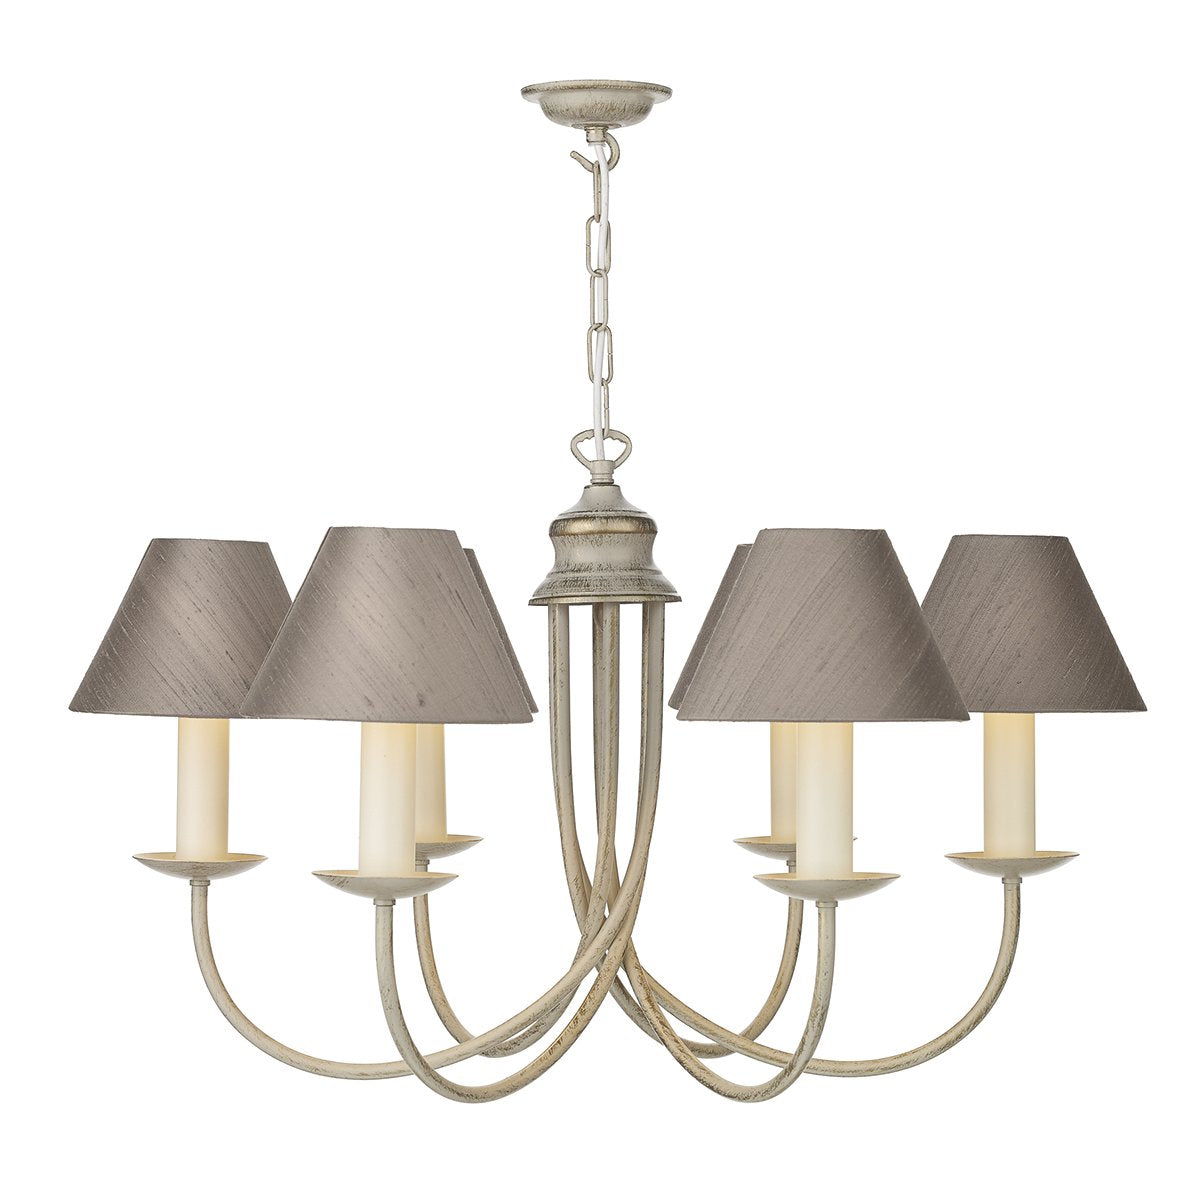 Harlington 6 Arm Wall Light In Cream Gold - ID 2240